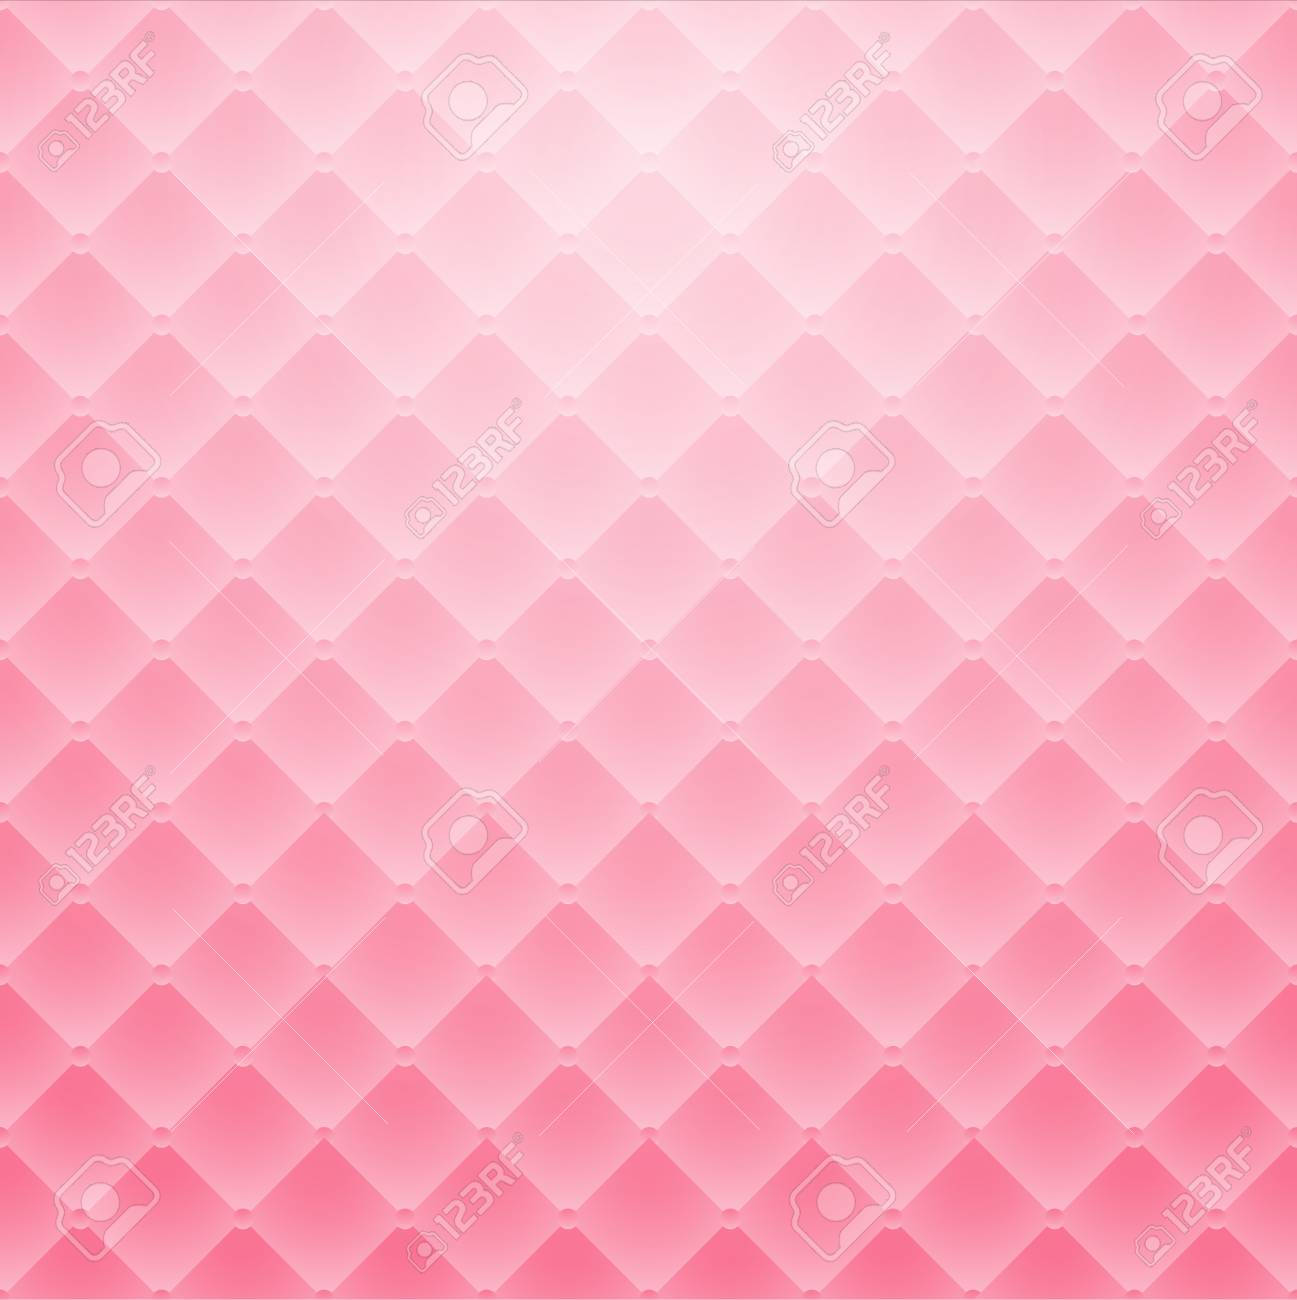 Sofa Texture Vector Pink Square Luxury Pattern Sofa Texture Background For Valentines